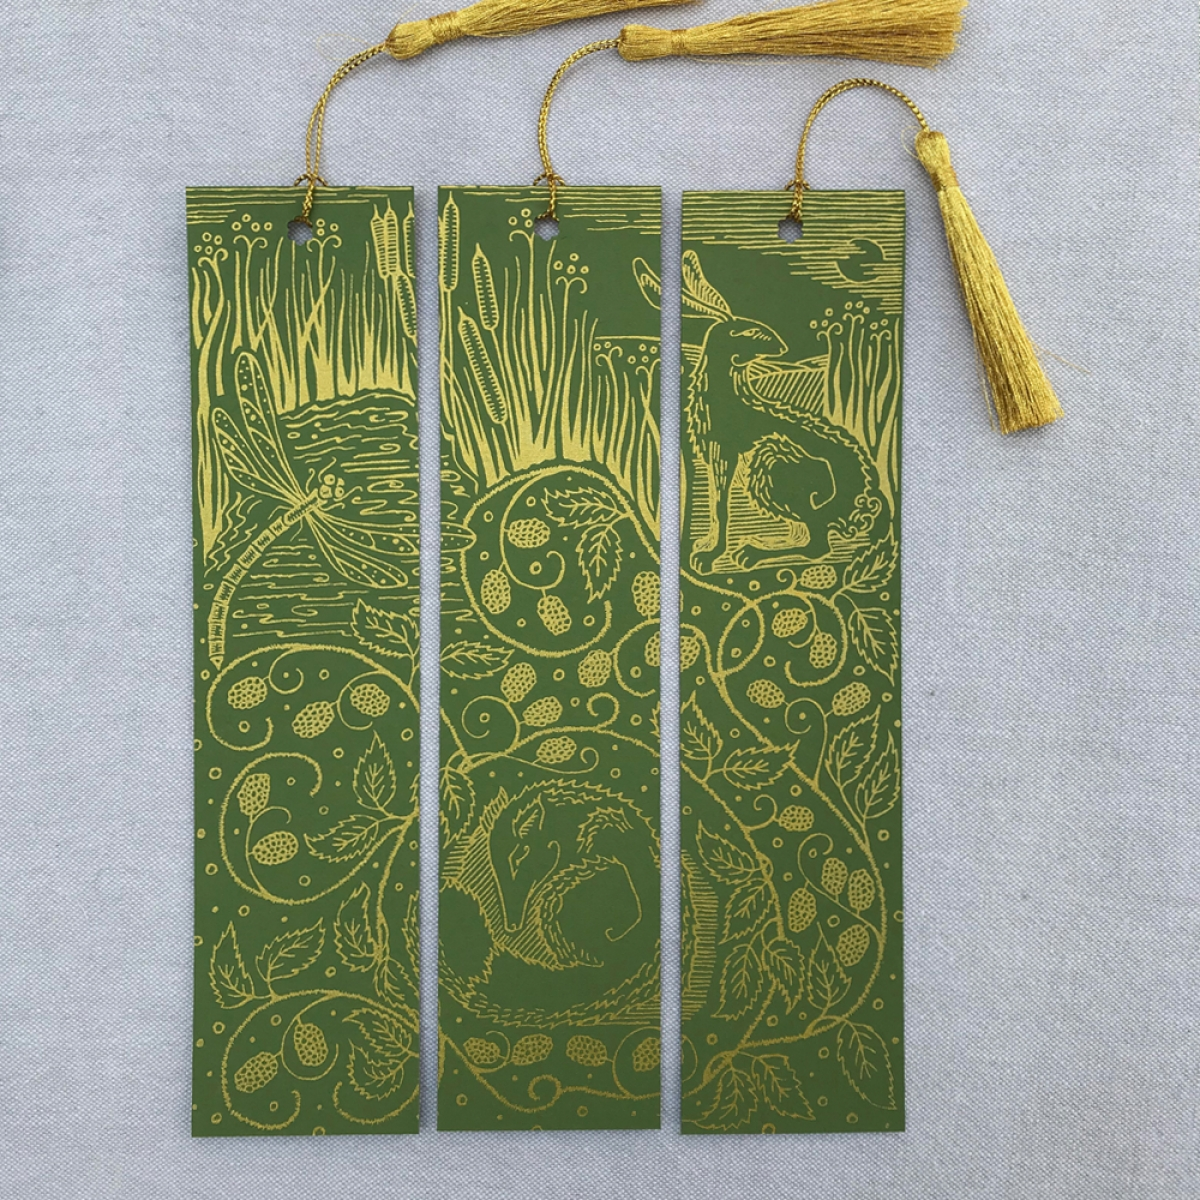 Hand Printed Triptych Bookmarks Olive Gold